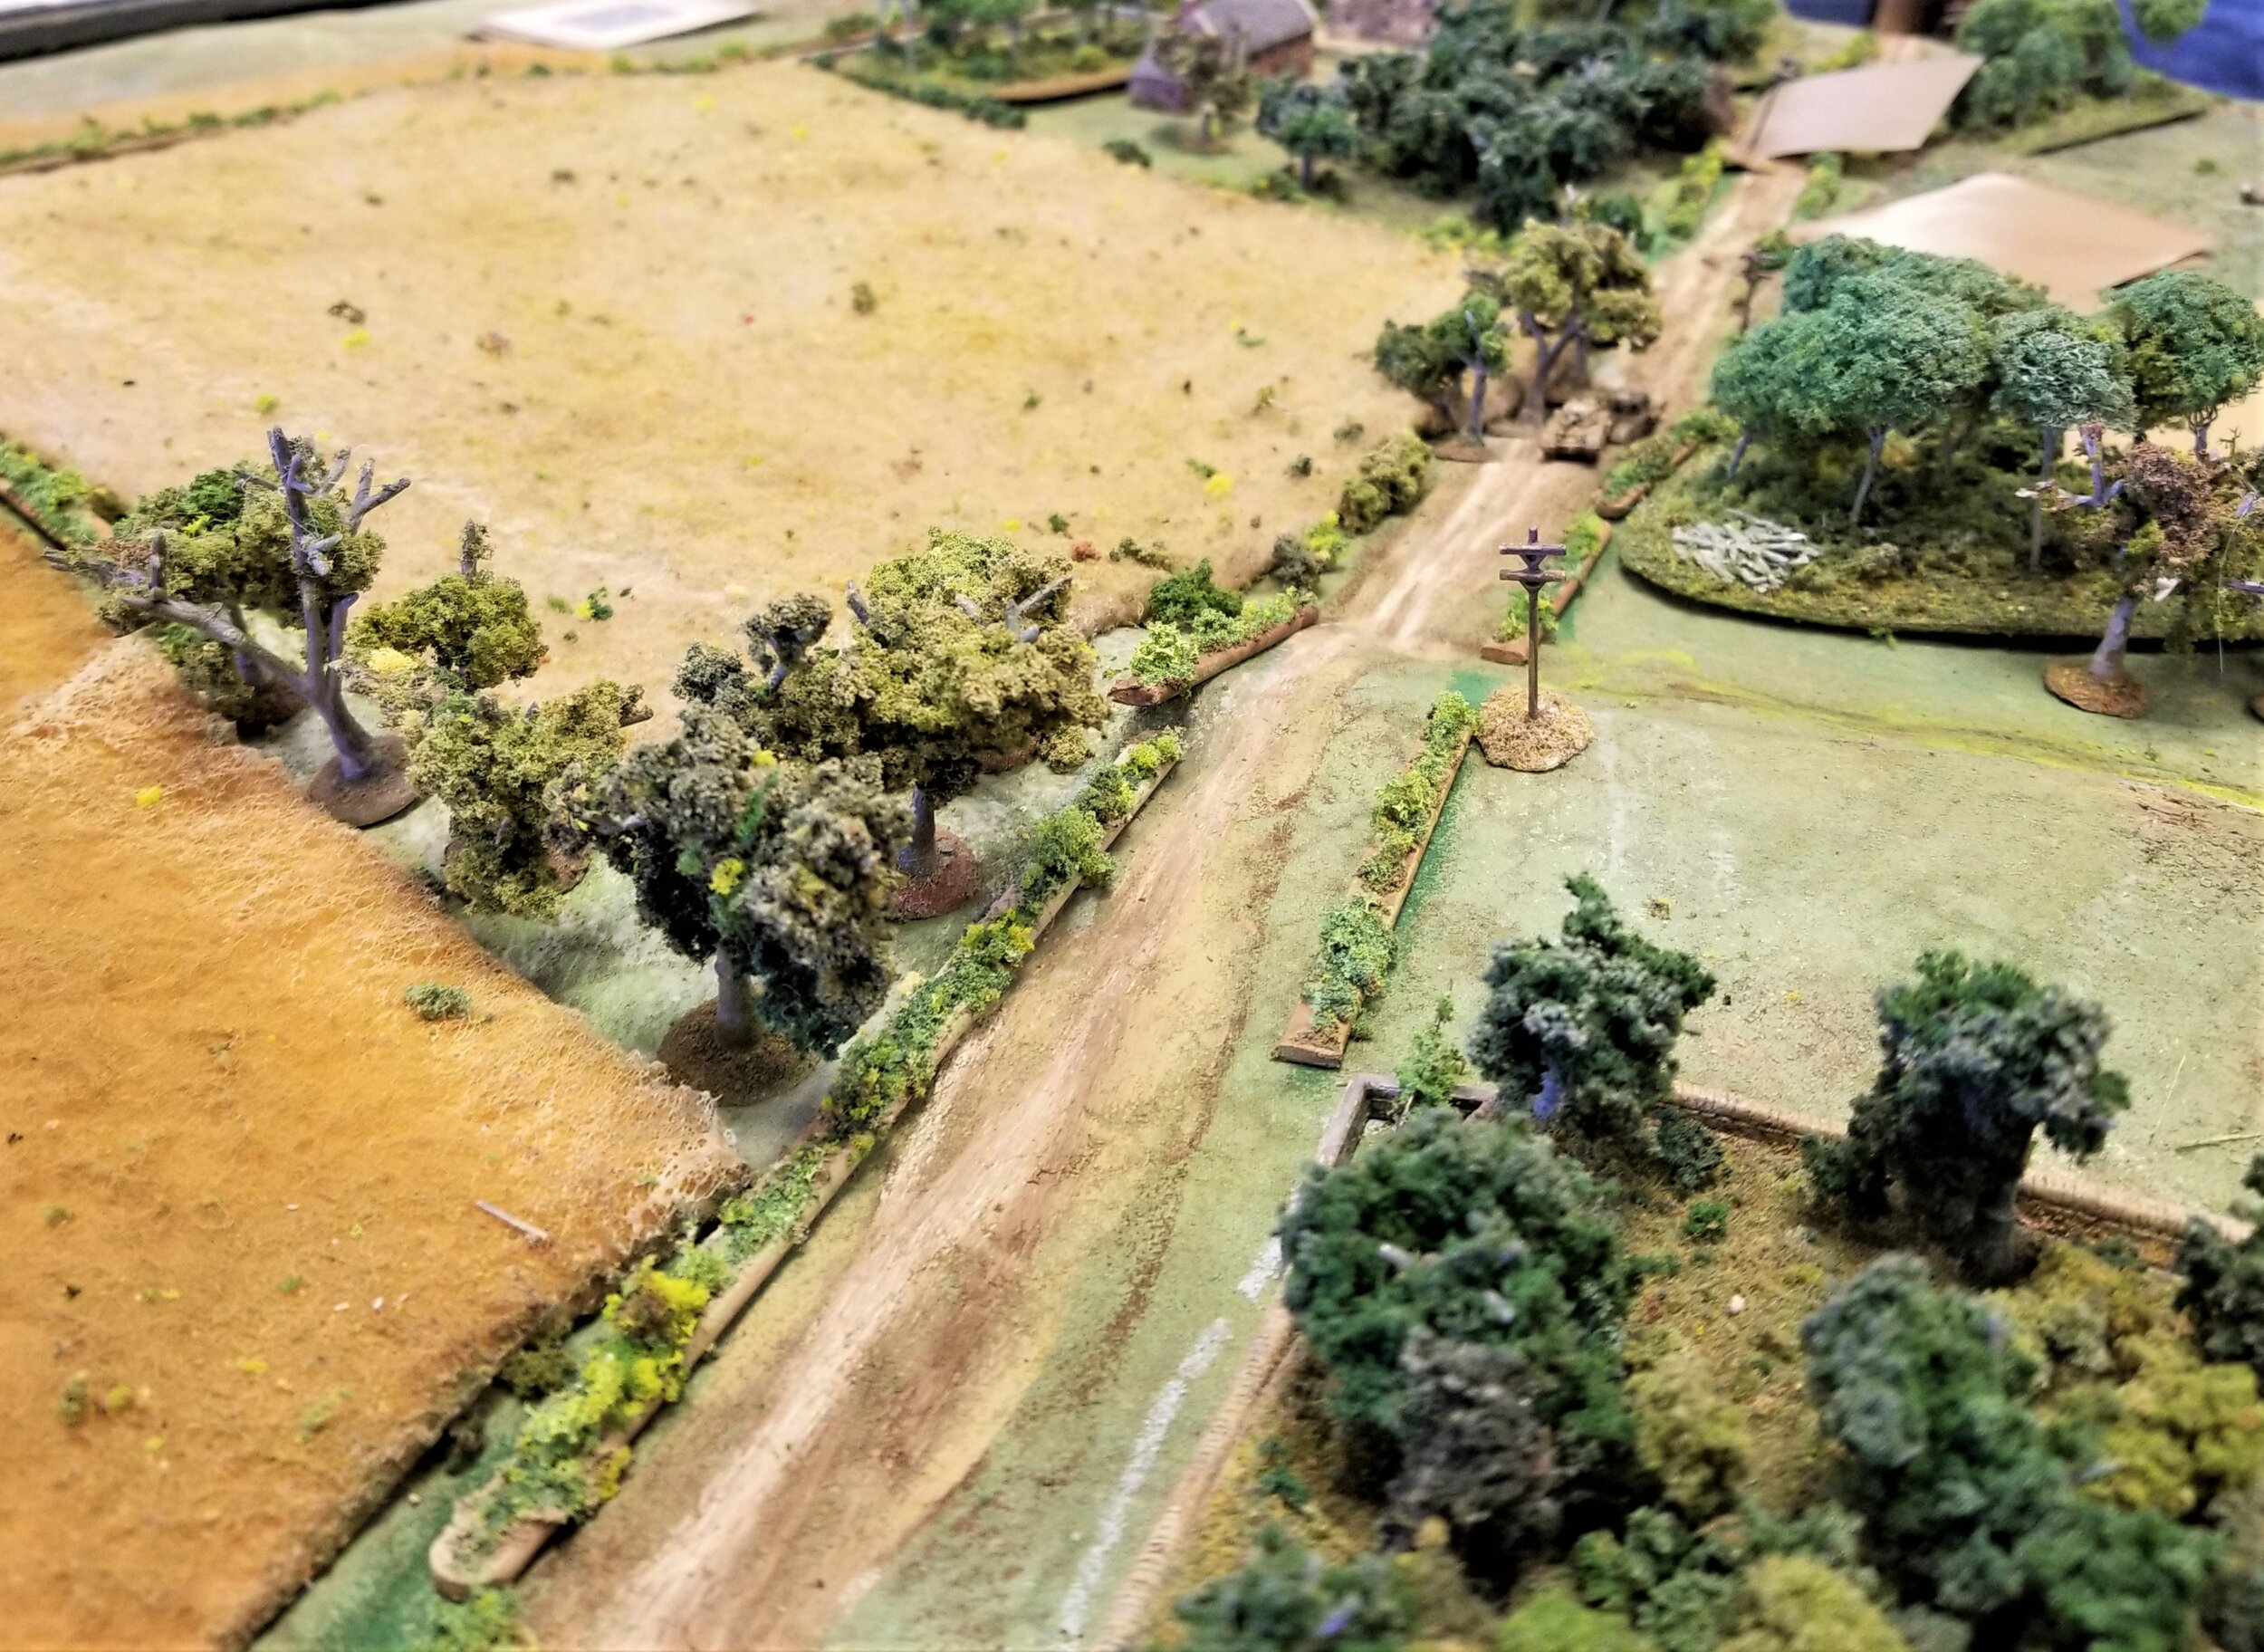 Churchills advance cautiously up the road